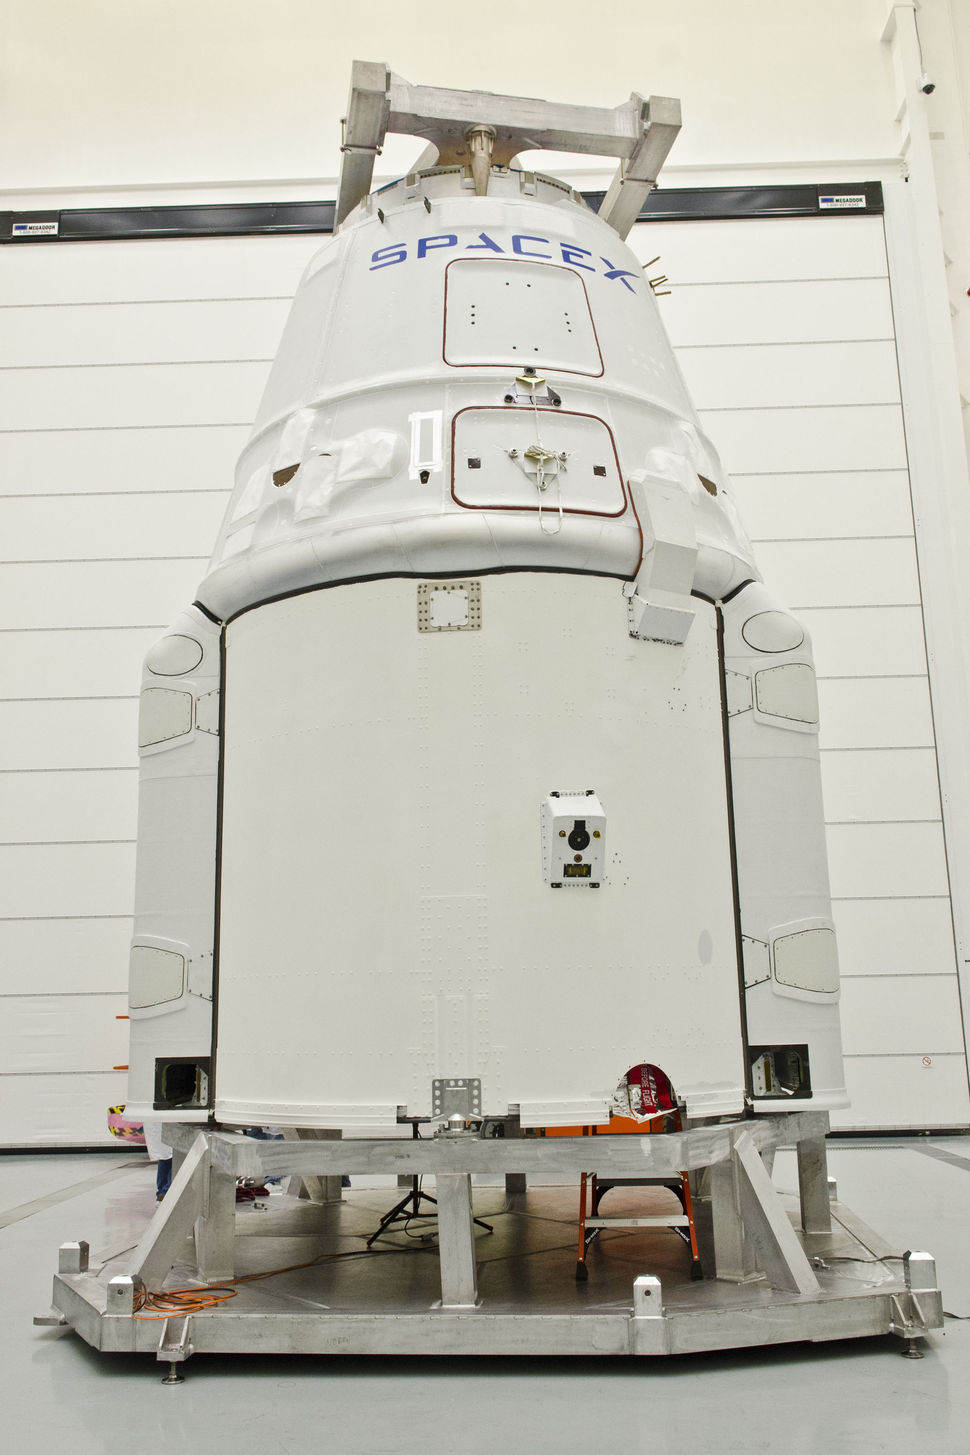 Dragon in SpaceX's hangar, prior to vehicle mate.